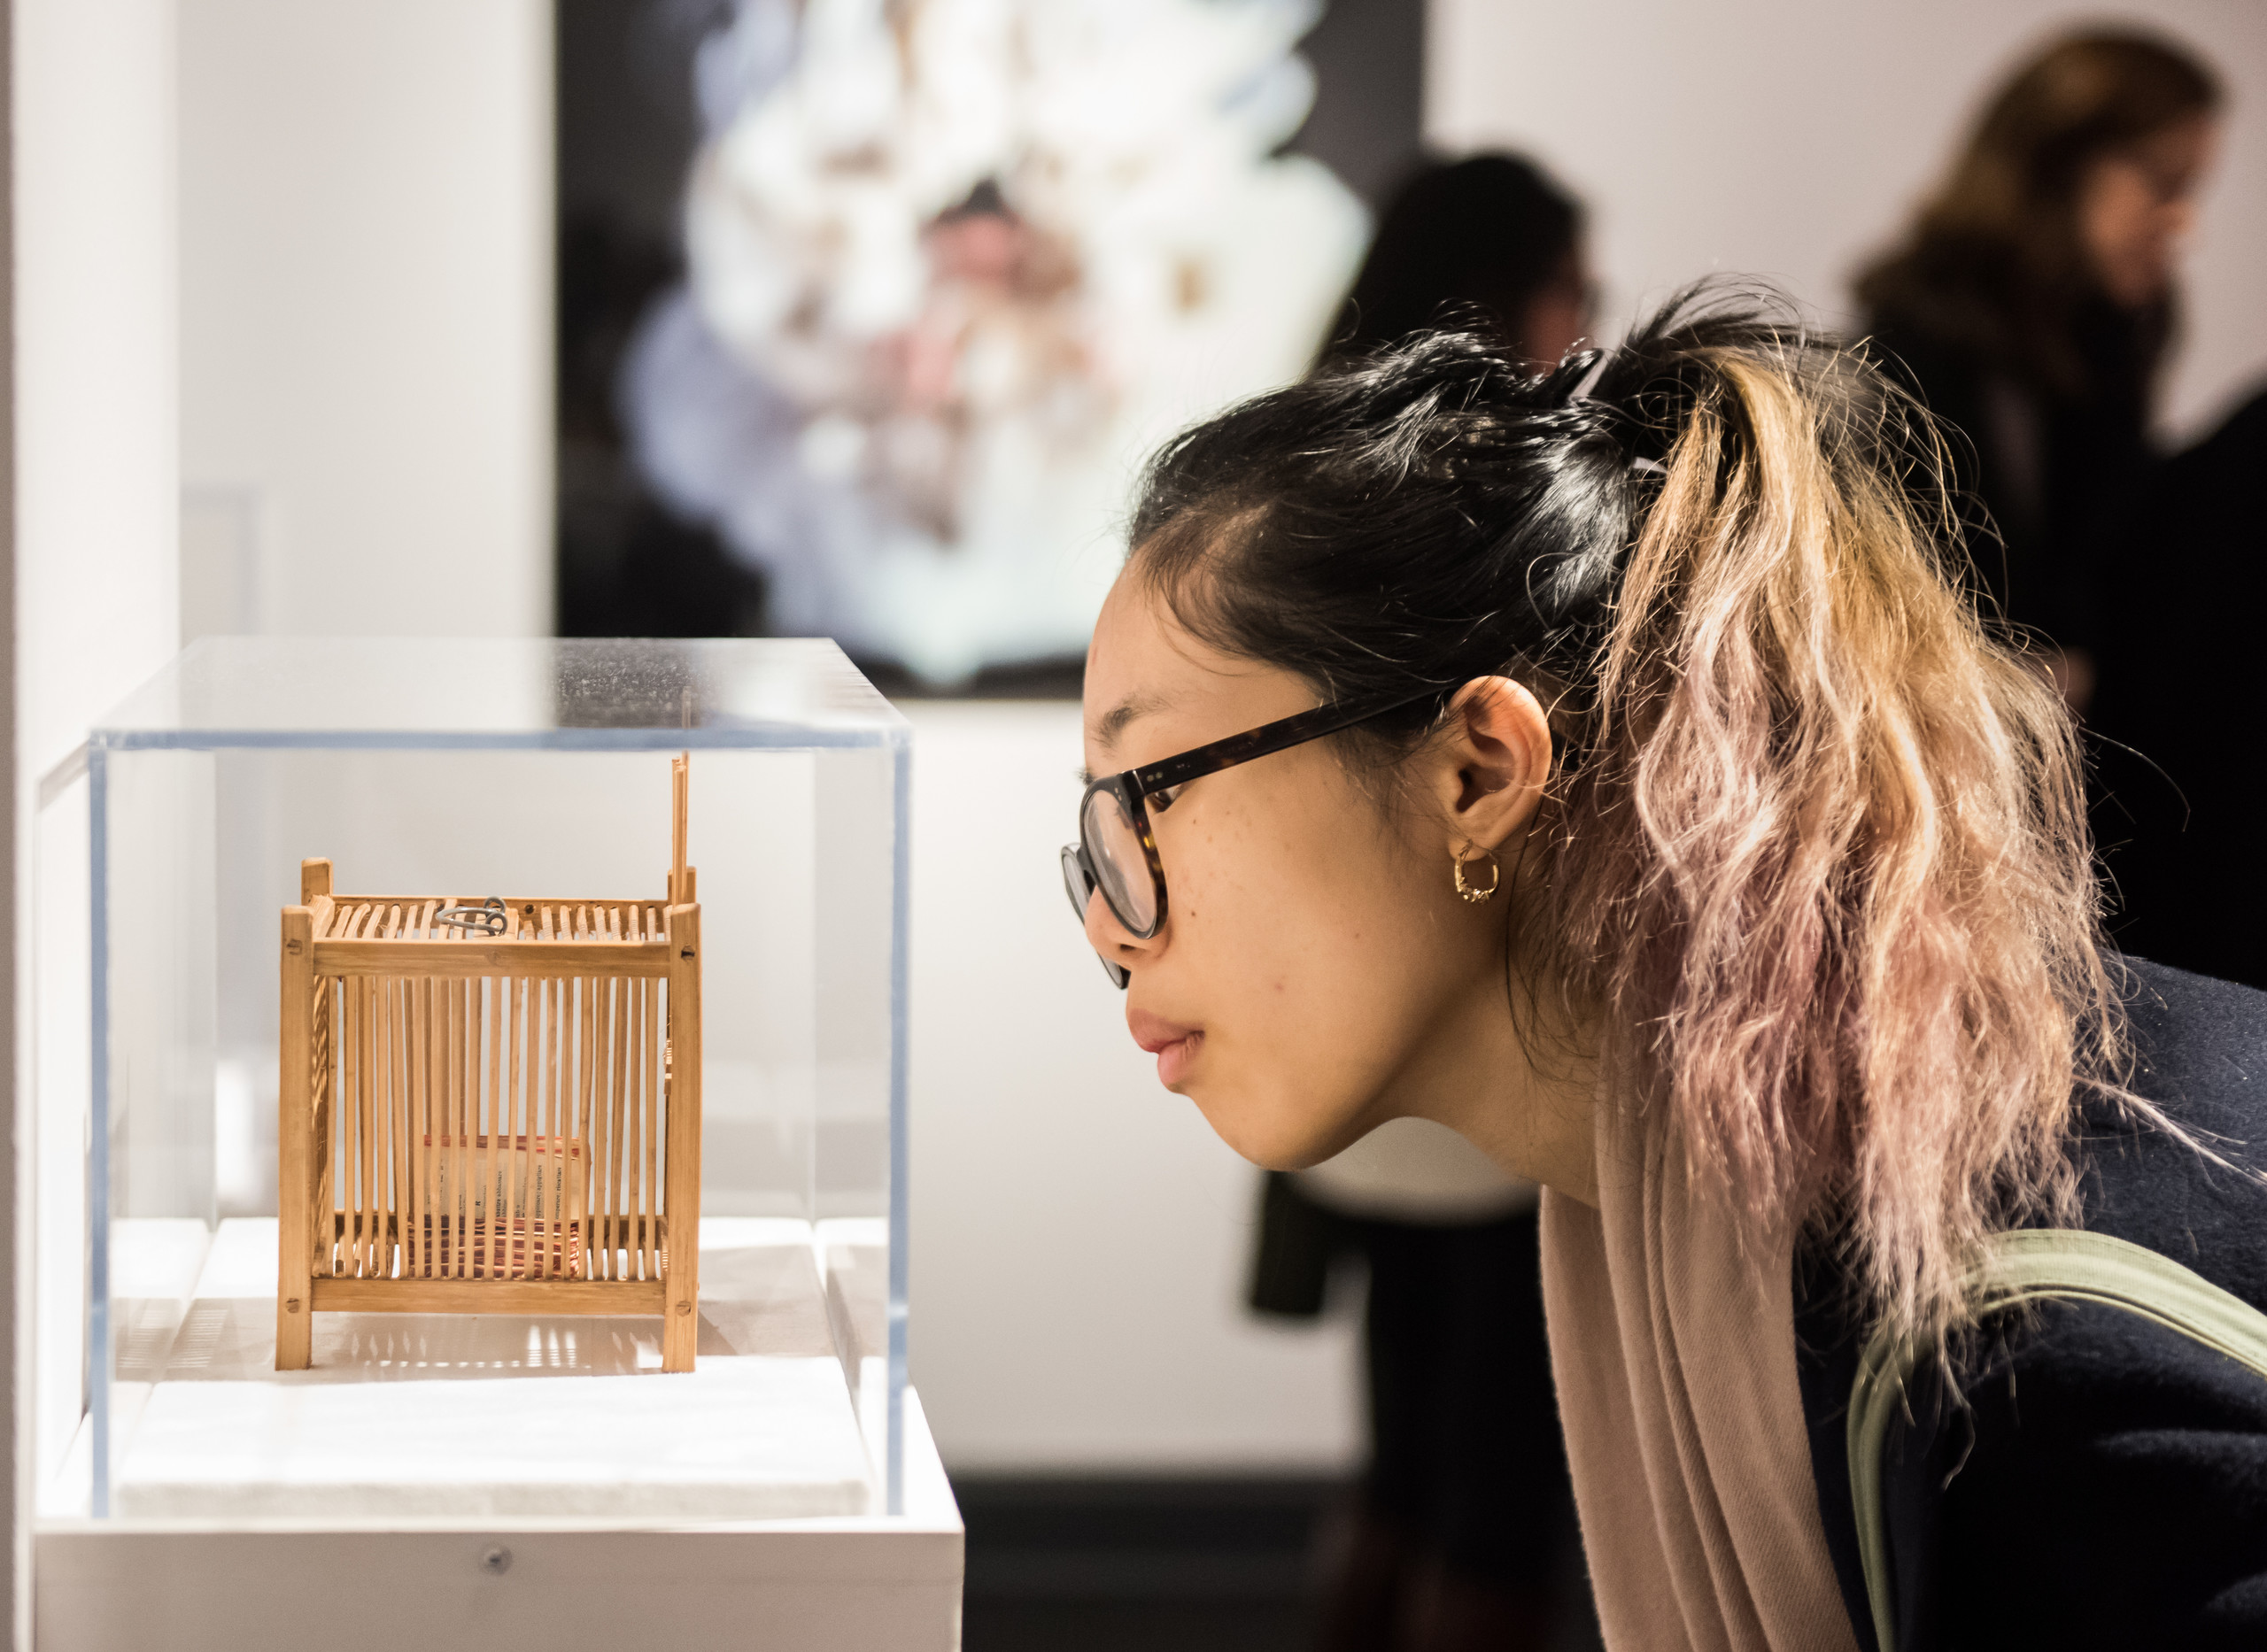 Partial gallery view of a young woman in a ponytail and glasses bending down to look at a tiny contemporary sculpture in a glass vitrine. The sculpture is a wooden cage with an object stored inside. On the back wall hangs a photograph of a light-skinned woman in a white dress.